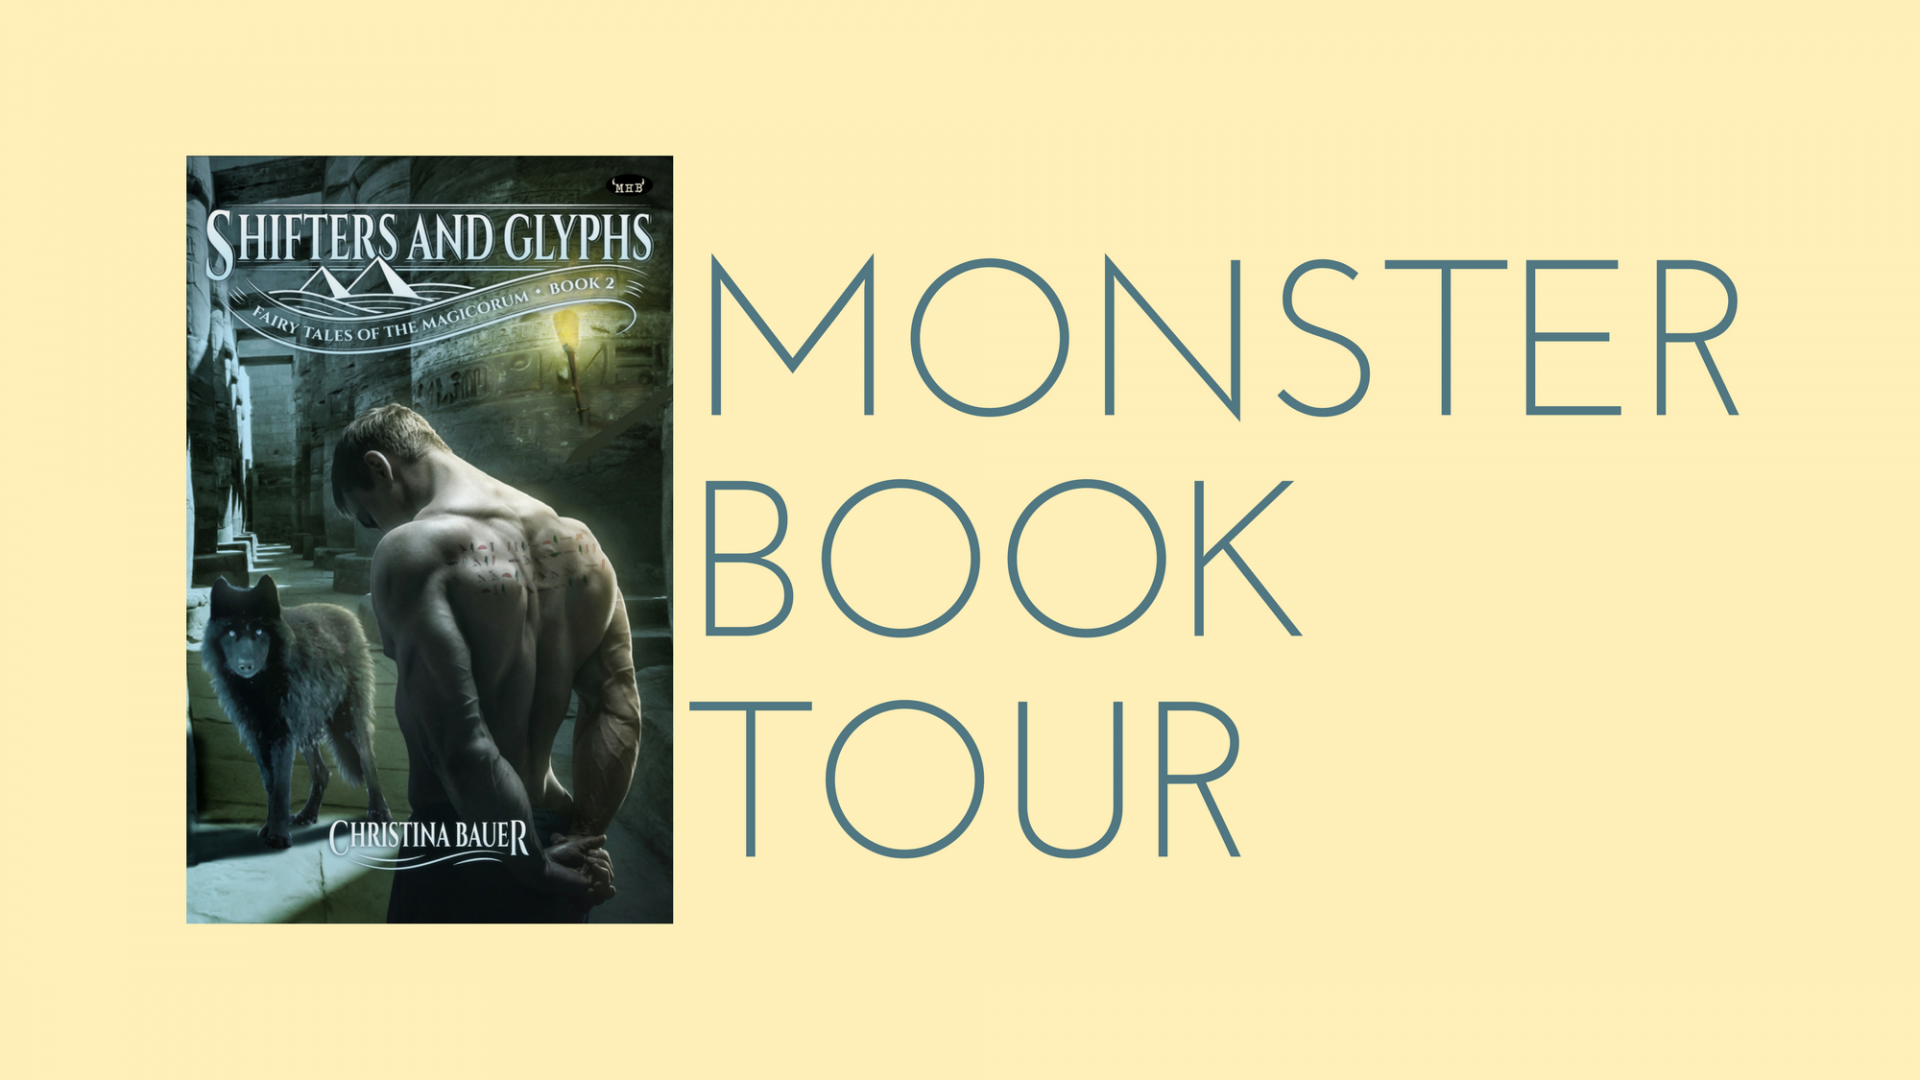 MONSTER BOOK TOUR 2018